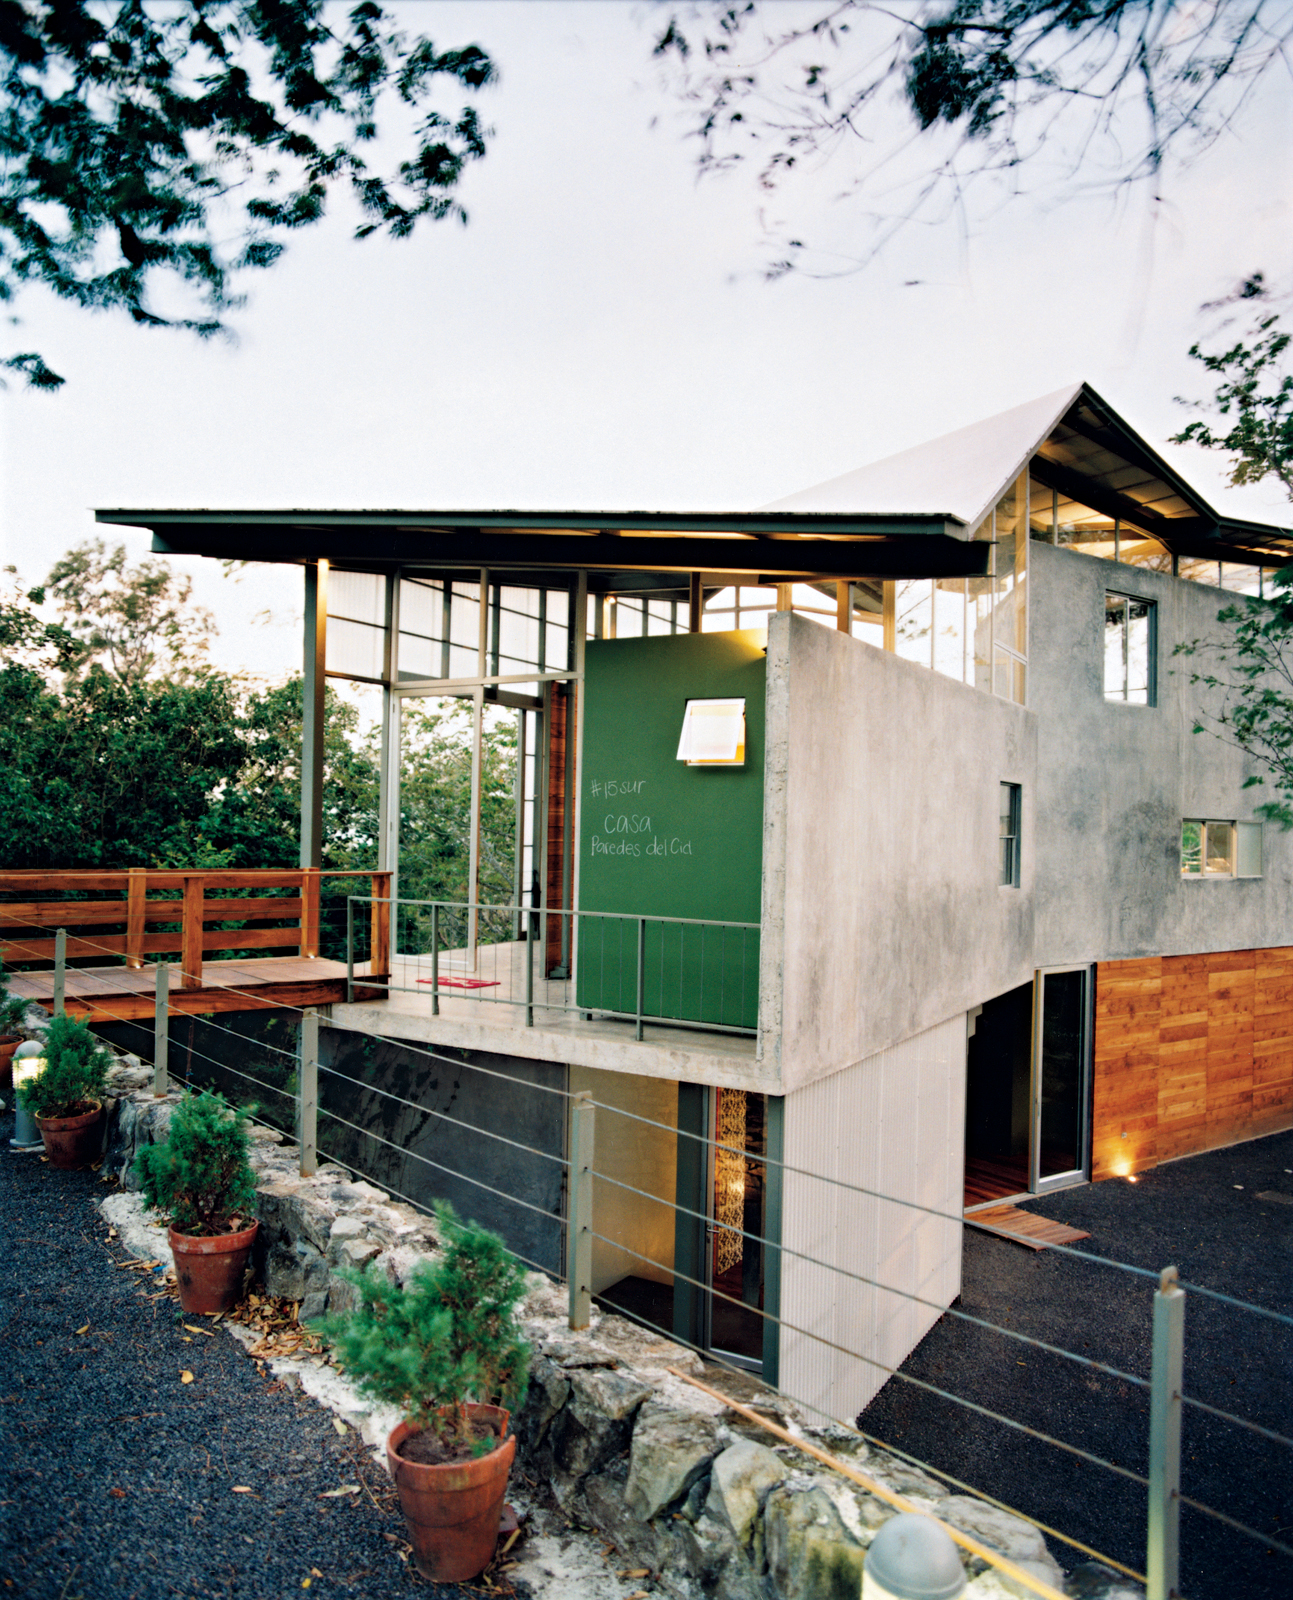 Banks of windows and translucent panels help keep Casa Tuscania nice and airy.